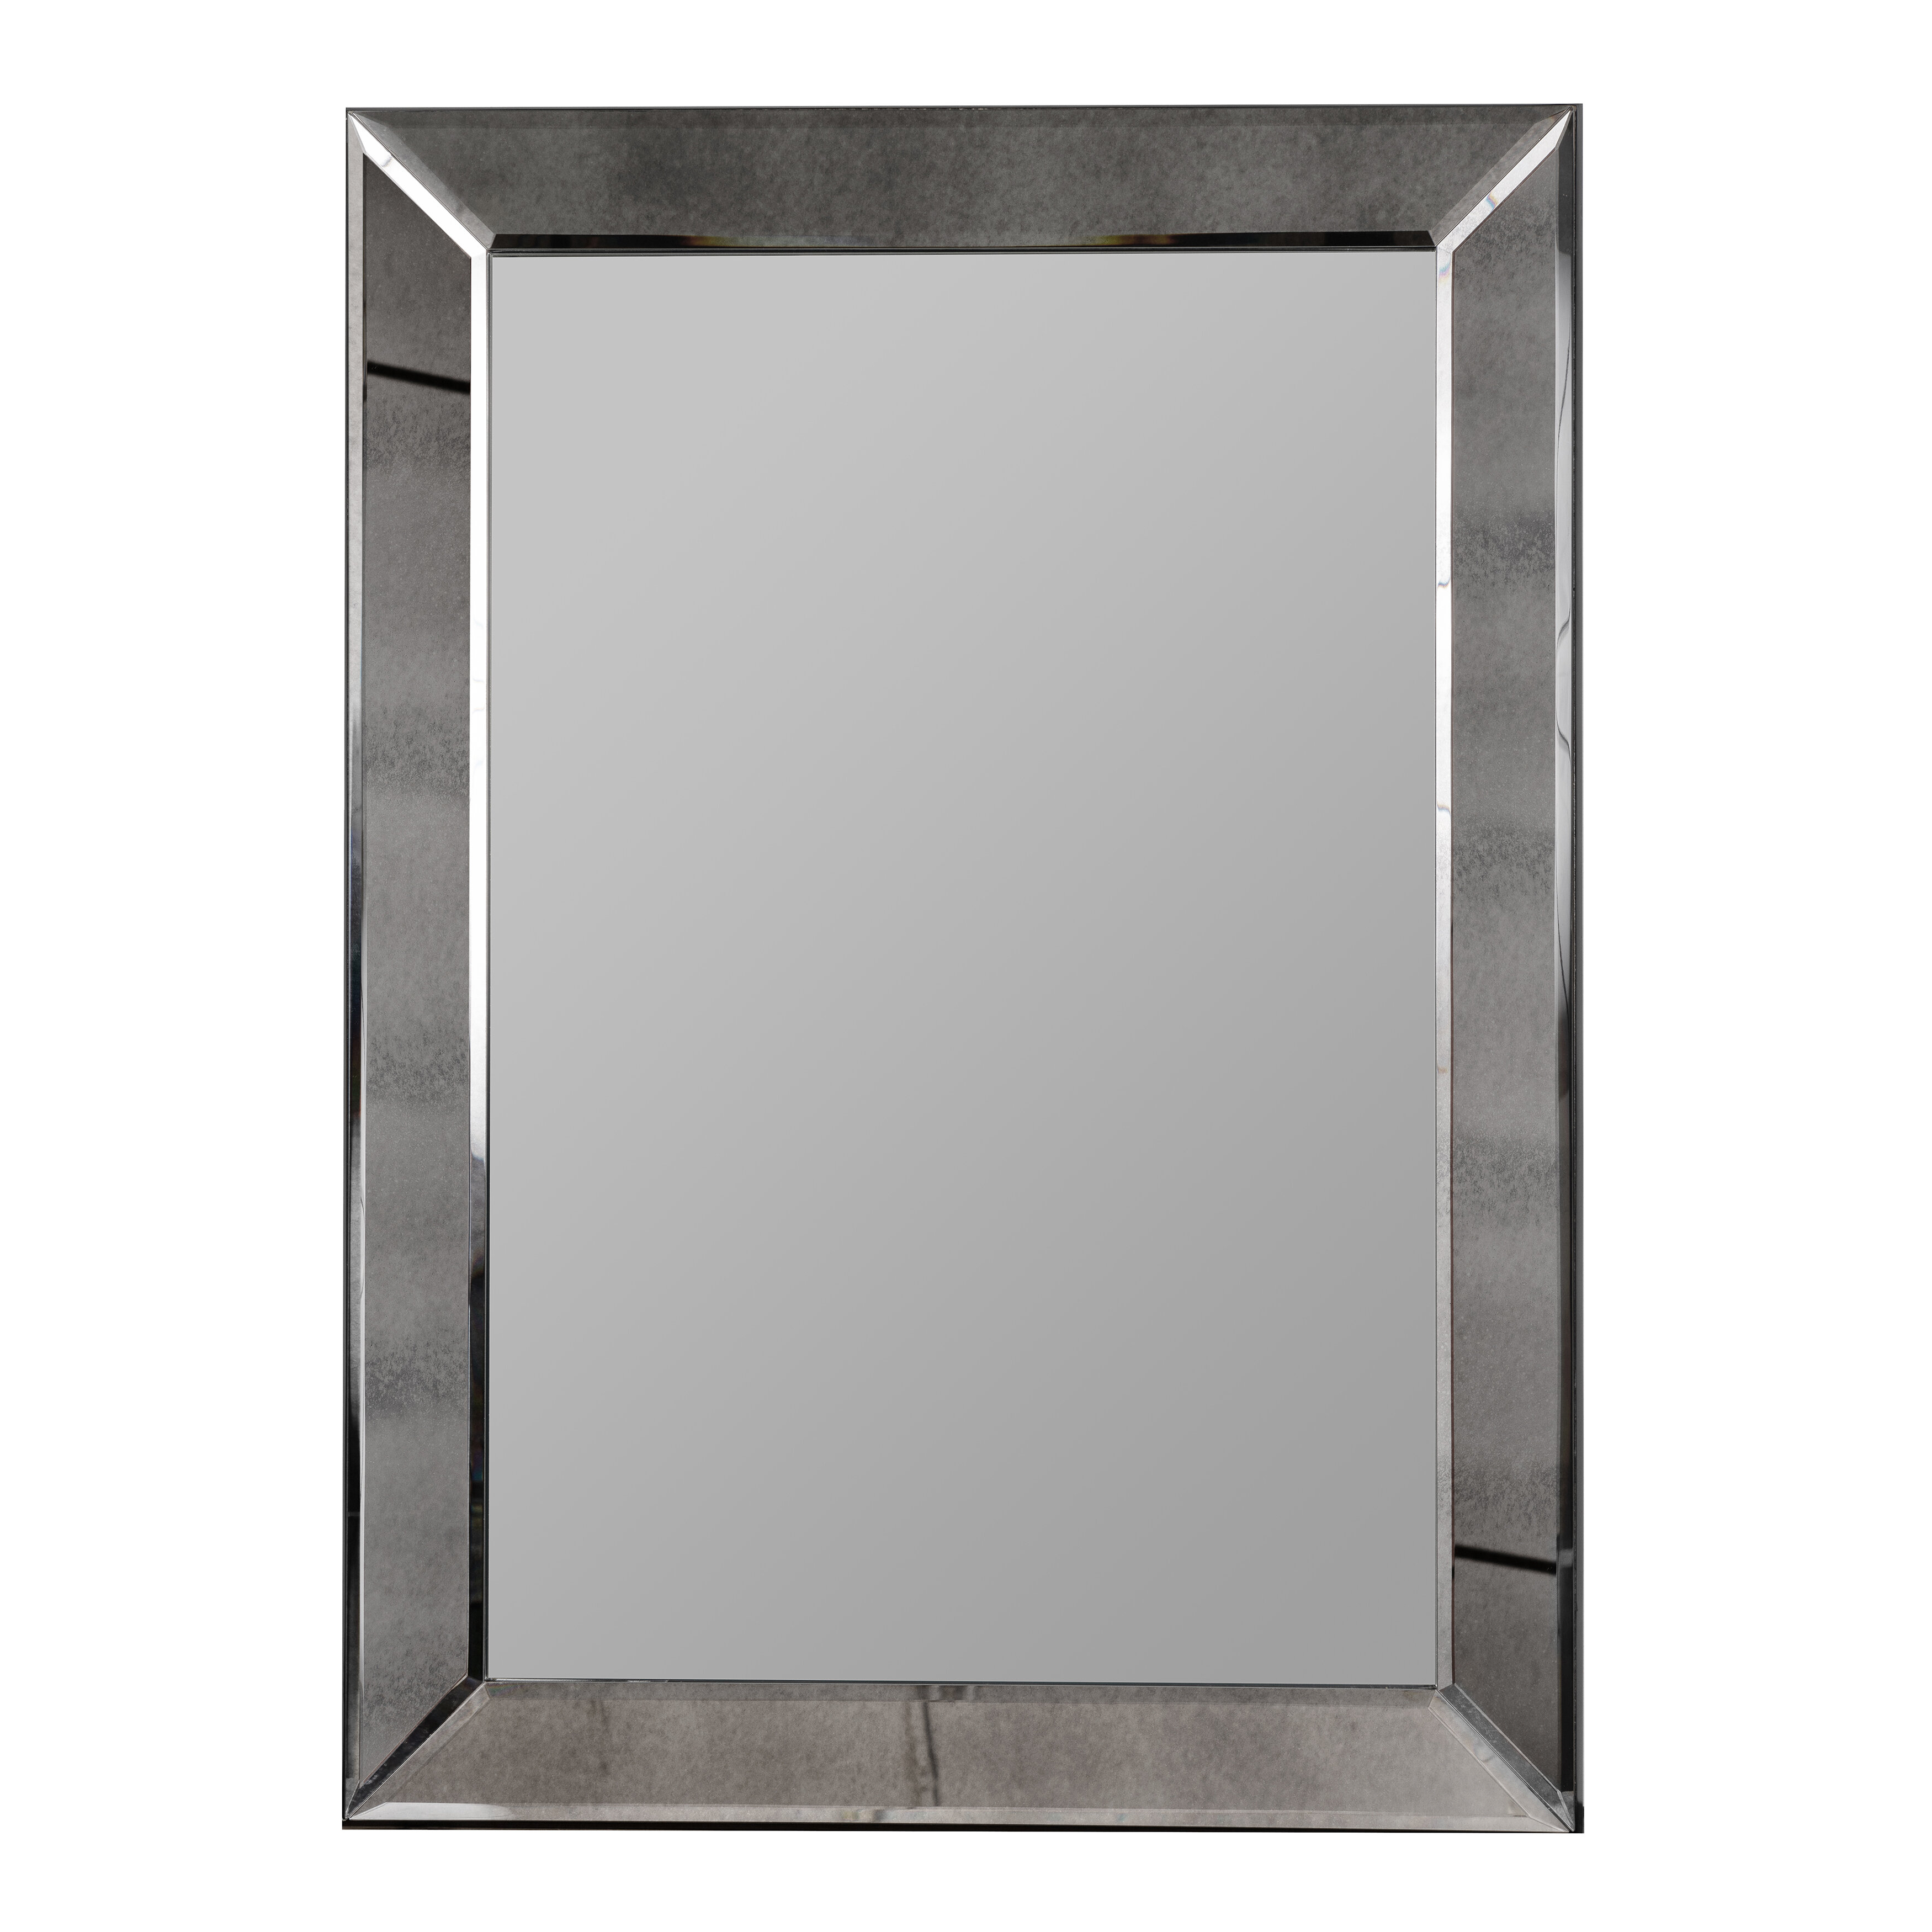 Modern & Contemporary Oval Powder Room Mirrors   Allmodern Pertaining To Kayden Accent Mirrors (View 25 of 30)